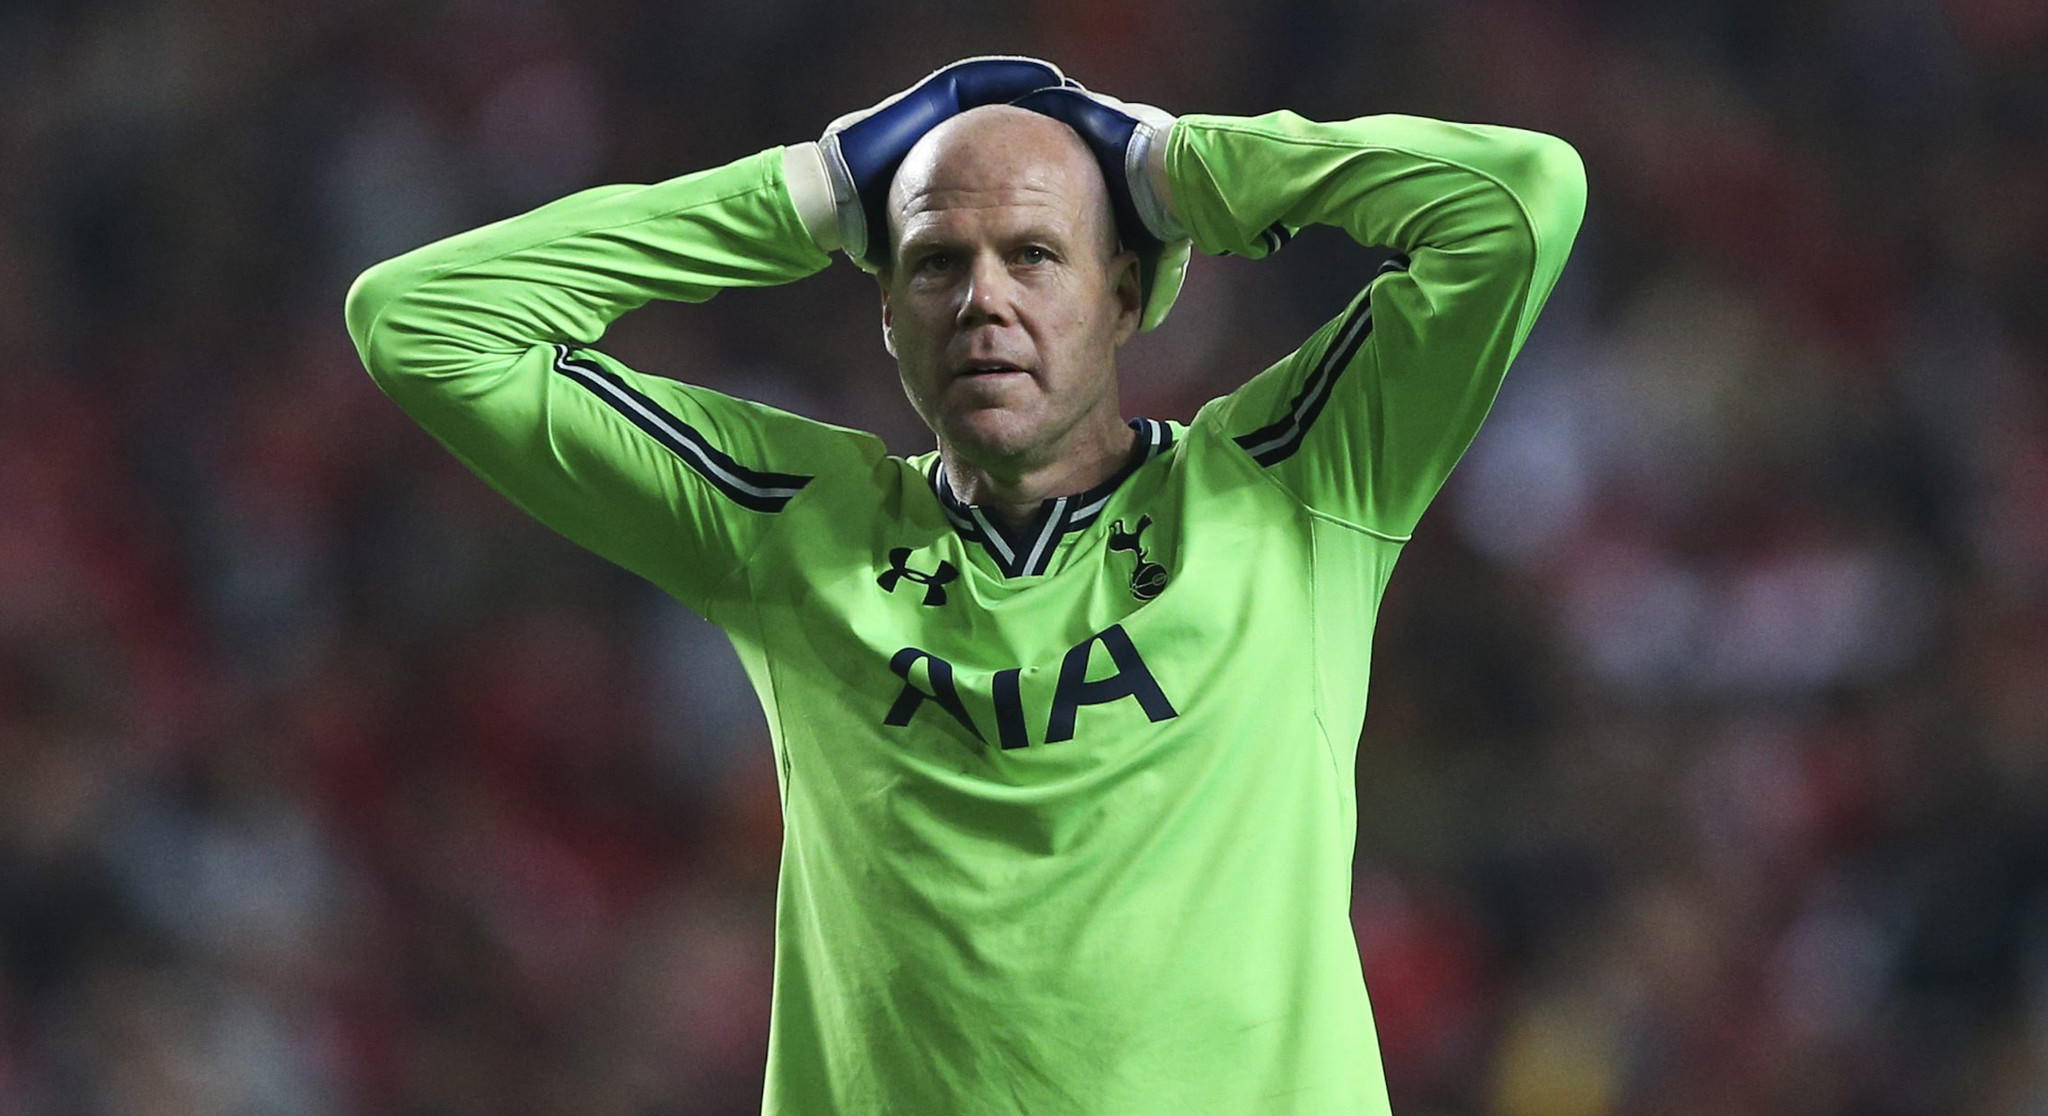 Tottenham Hotspur goalkeeper Brad Friedel reacts after a teammate missed a scoring opportunity during a UEFA Europa League match against Benfica in March. Friedel is one of the greatest goalkeepers in U.S. history.